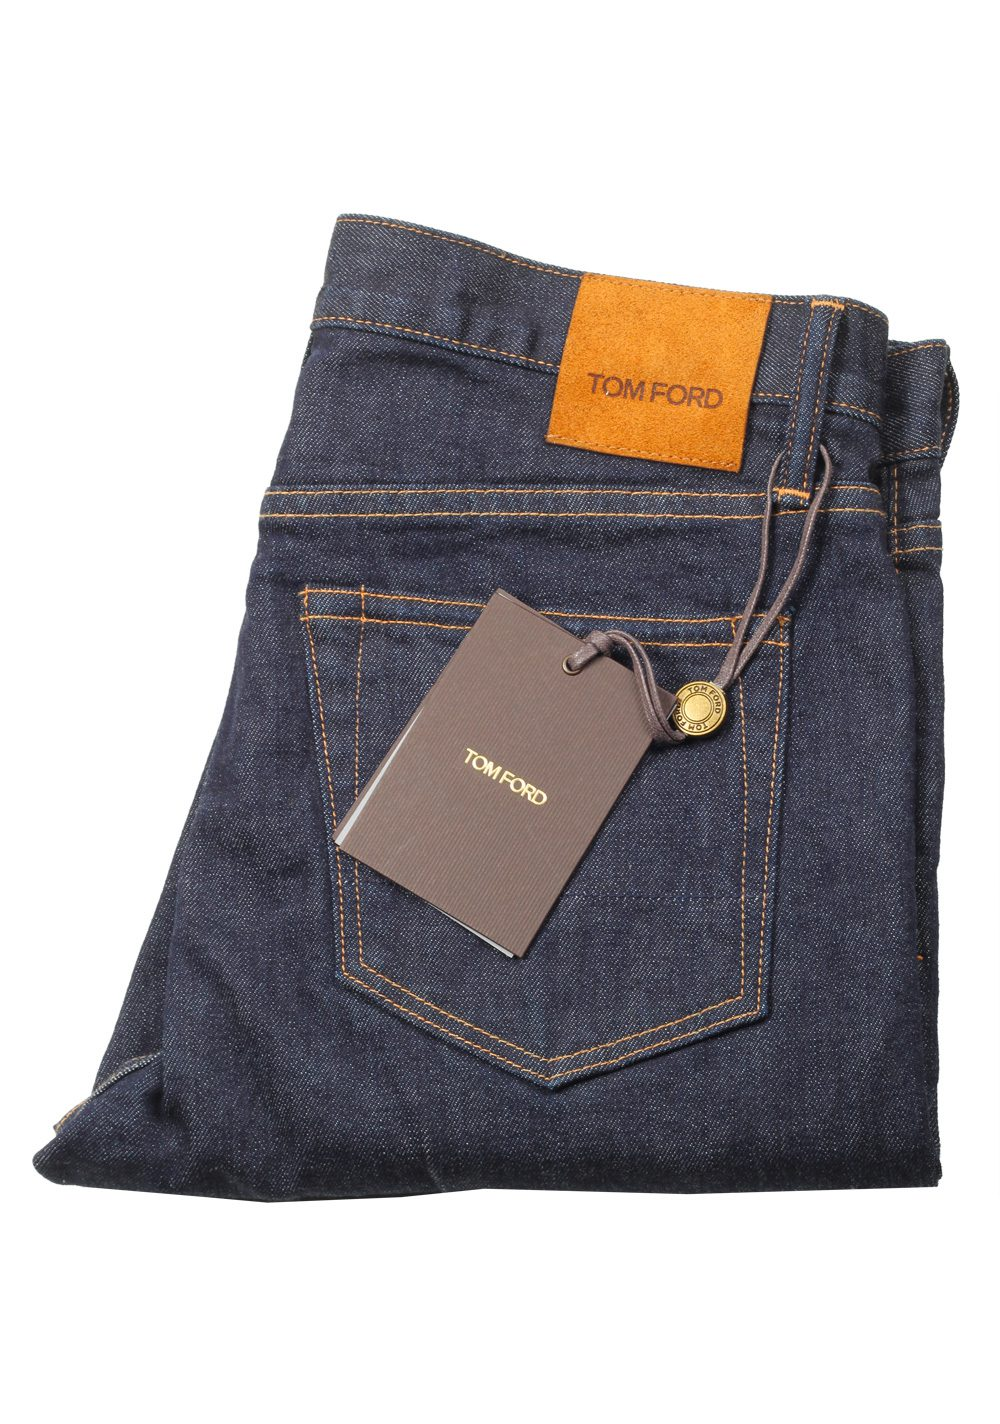 TOM FORD Blue Straight Jeans TFD002 Size 54 / 38 U.S. | Costume Limité